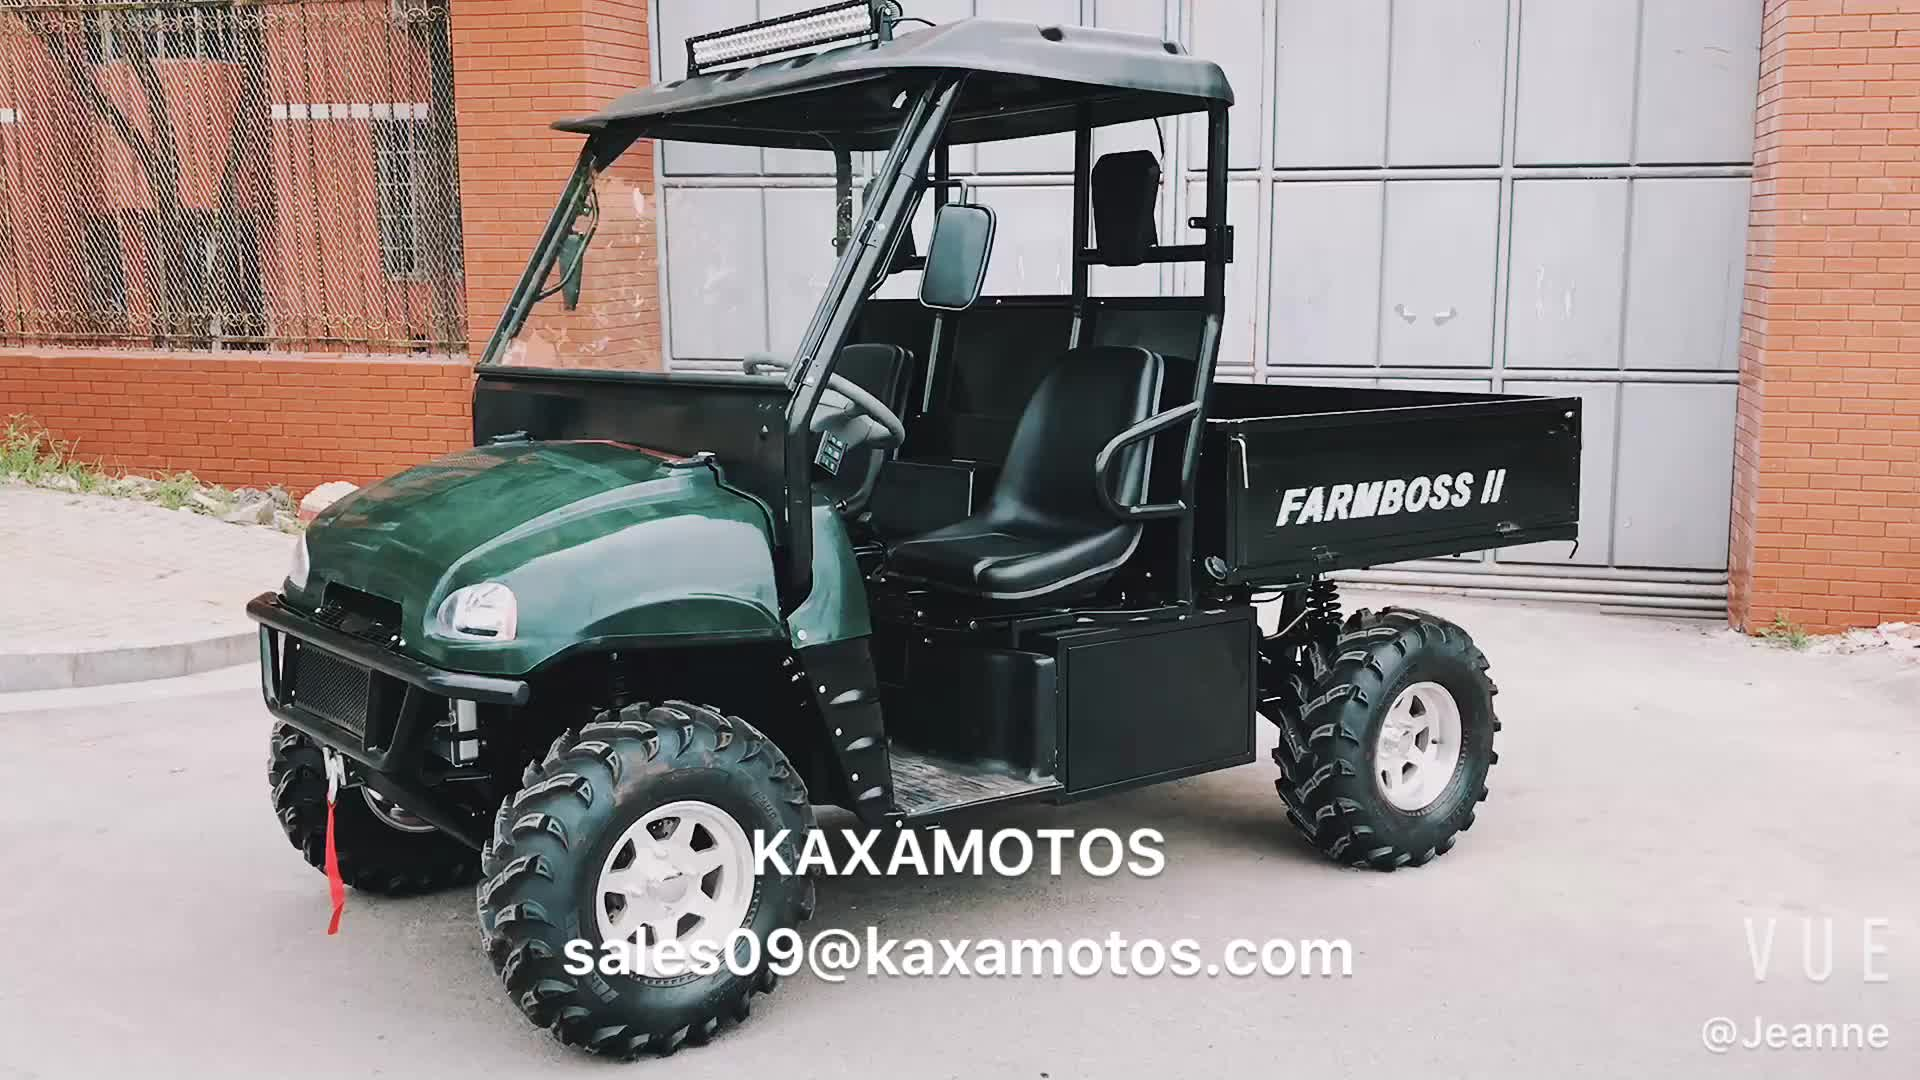 2019 Hot selling Farm Boss 1000CC Diesel UTV 4x4